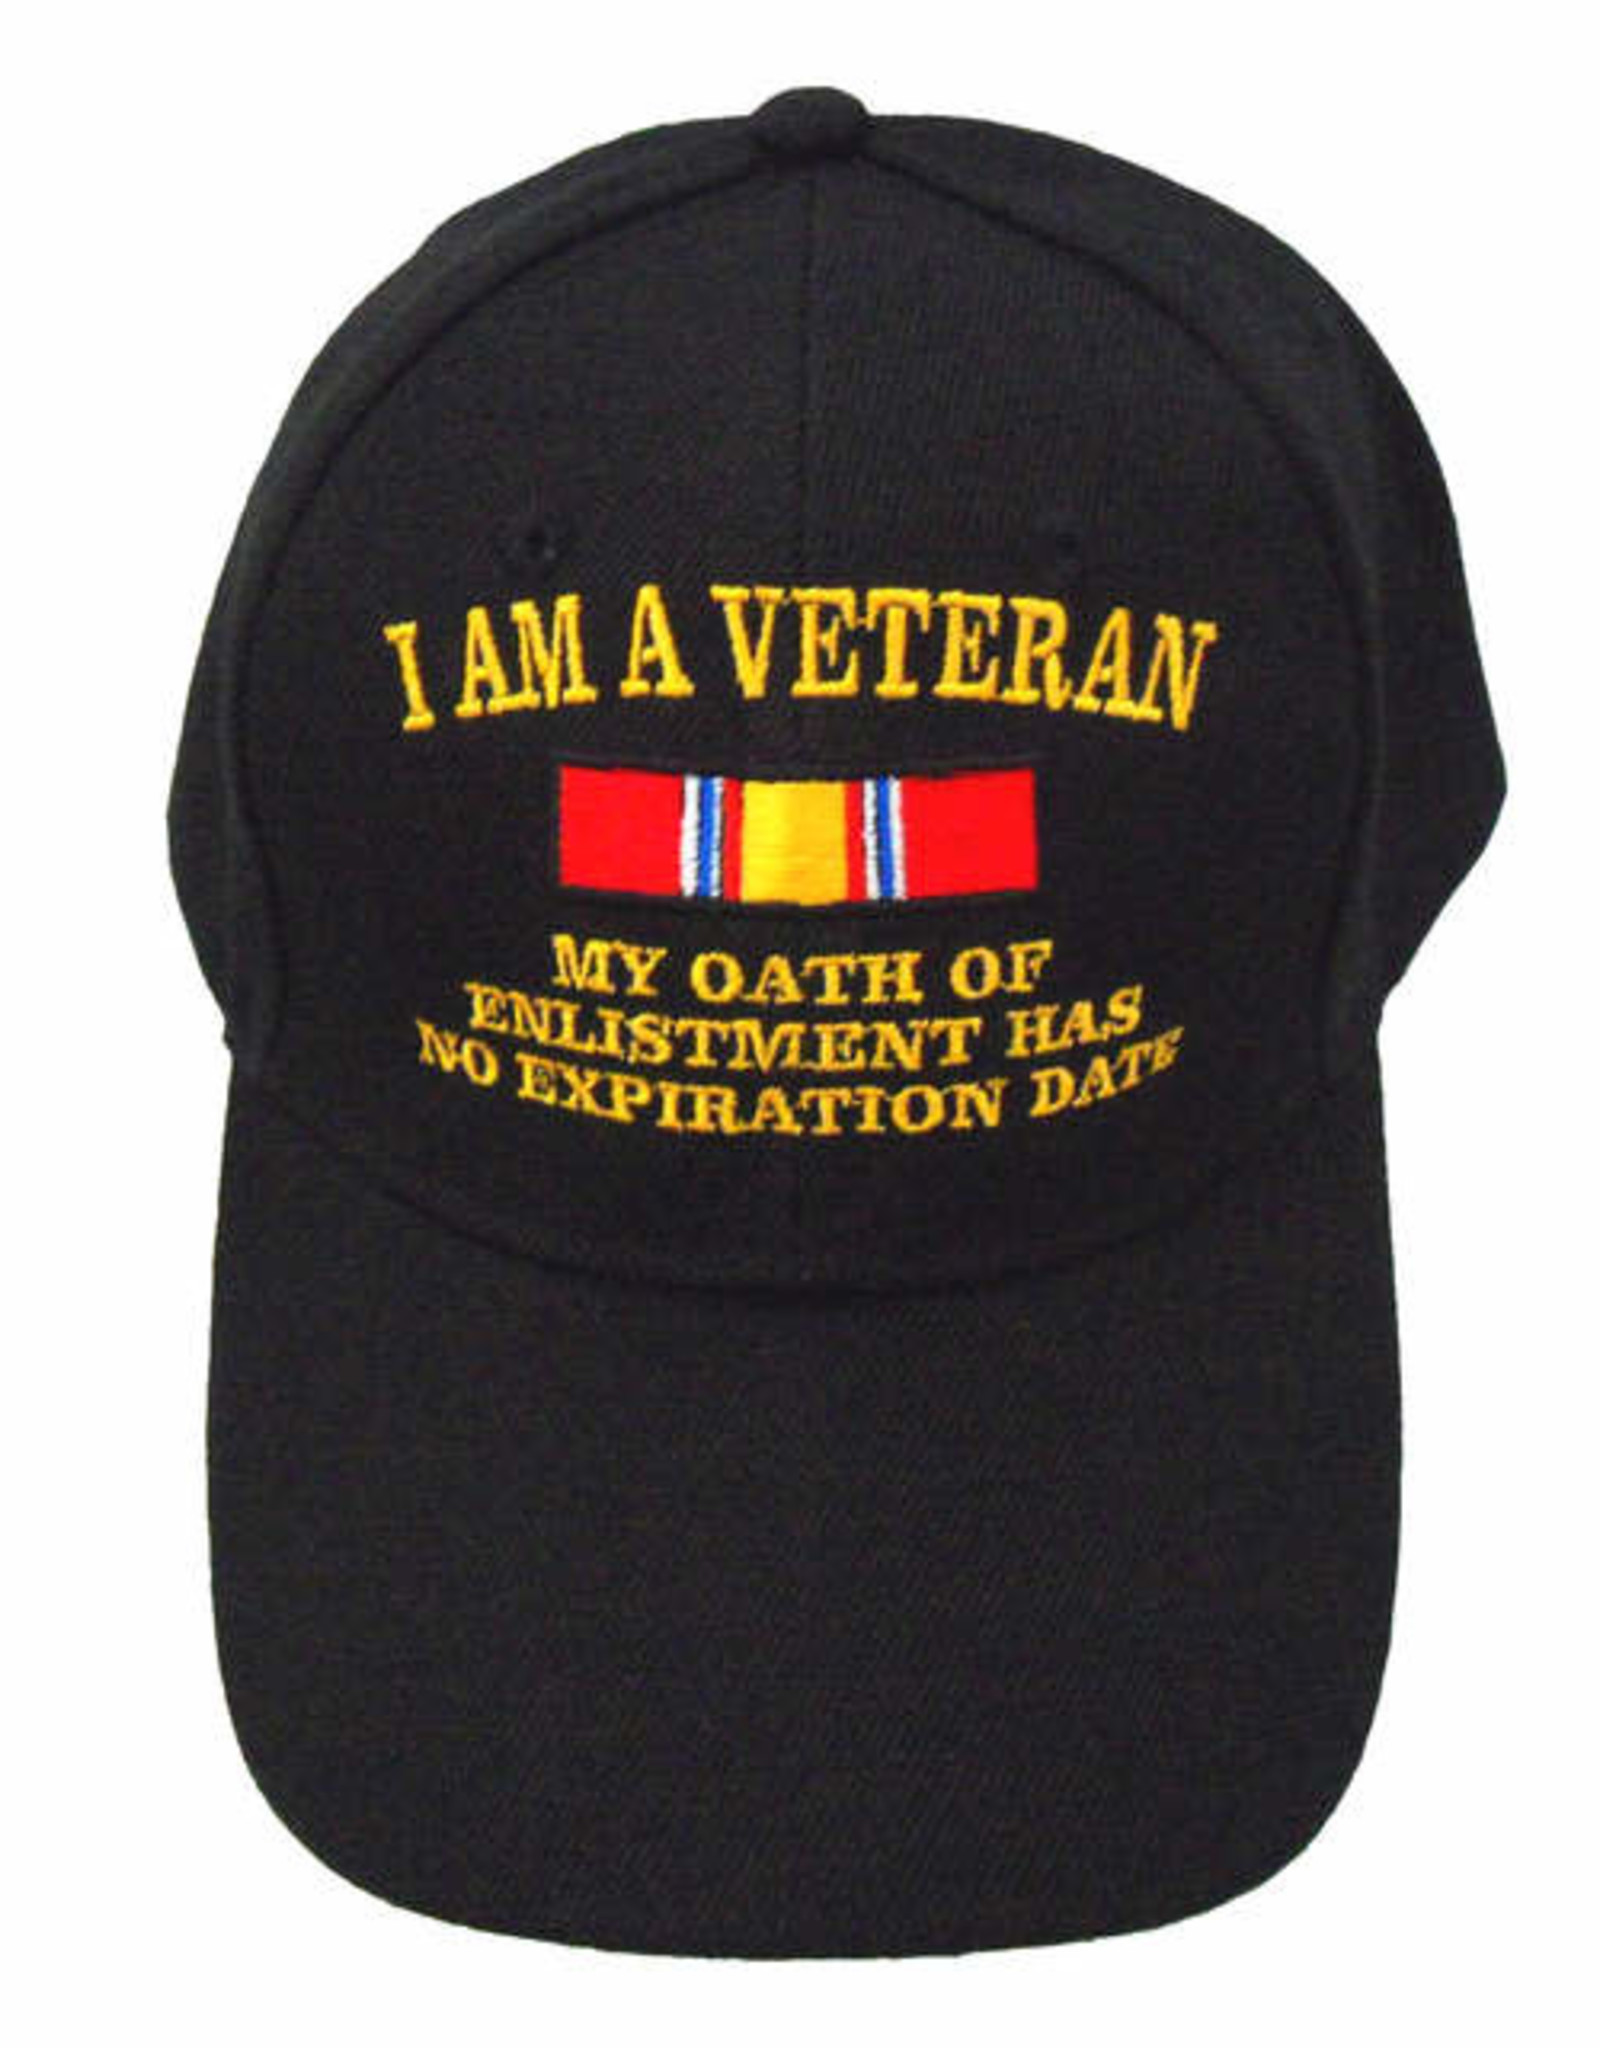 MidMil I Am a Veteran, My Oath of Enlistment Has No Expiration Date Hat with National Defense Ribbon Black